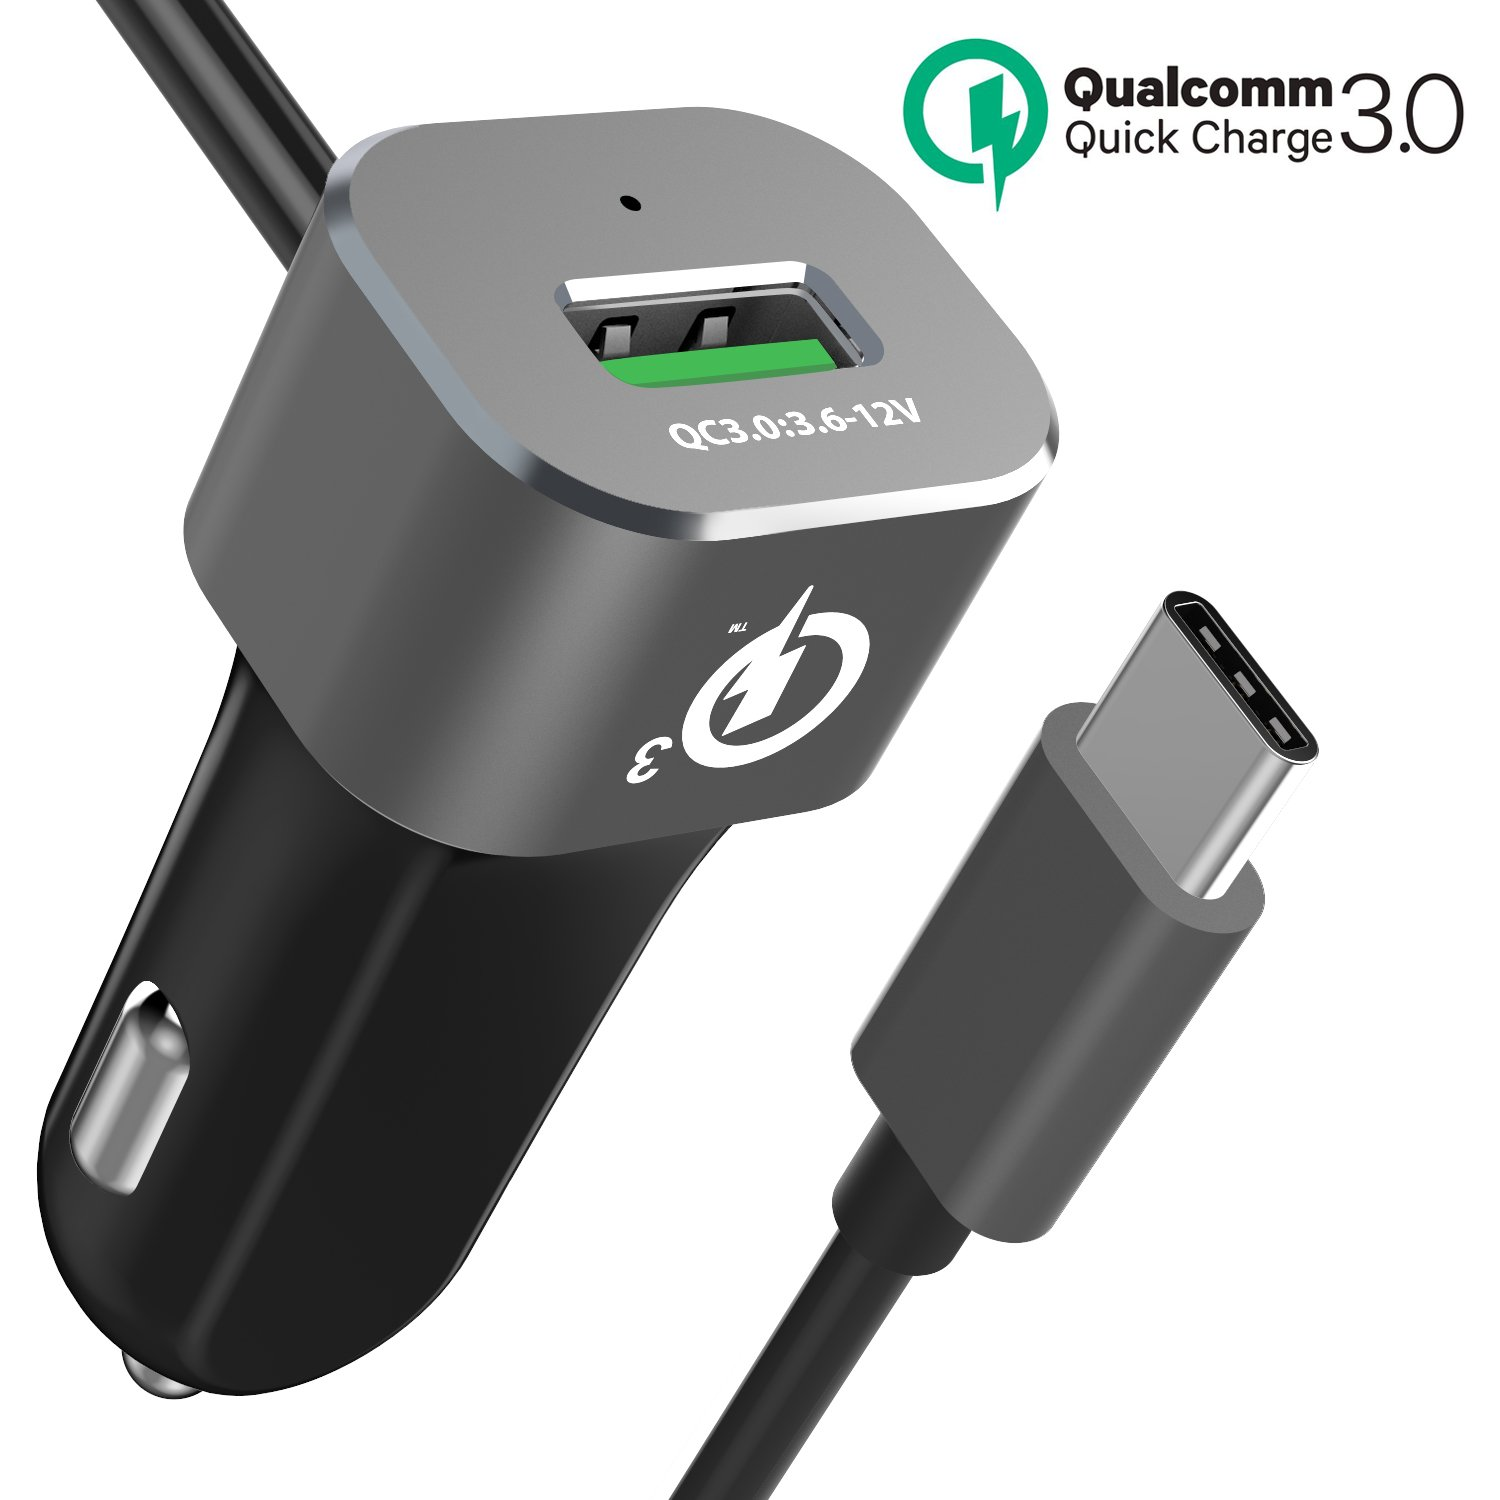 Car Charger, BrexLink Quick Charge 3.0 Car Charger Adapter W. Integrated Built-in USB-C Cable Compatible w. iPhone, Google Pixel, Nexus 6P 5X, Samsung Note 8 9 S8 S9 Plus, LG V30, OnePlus & More